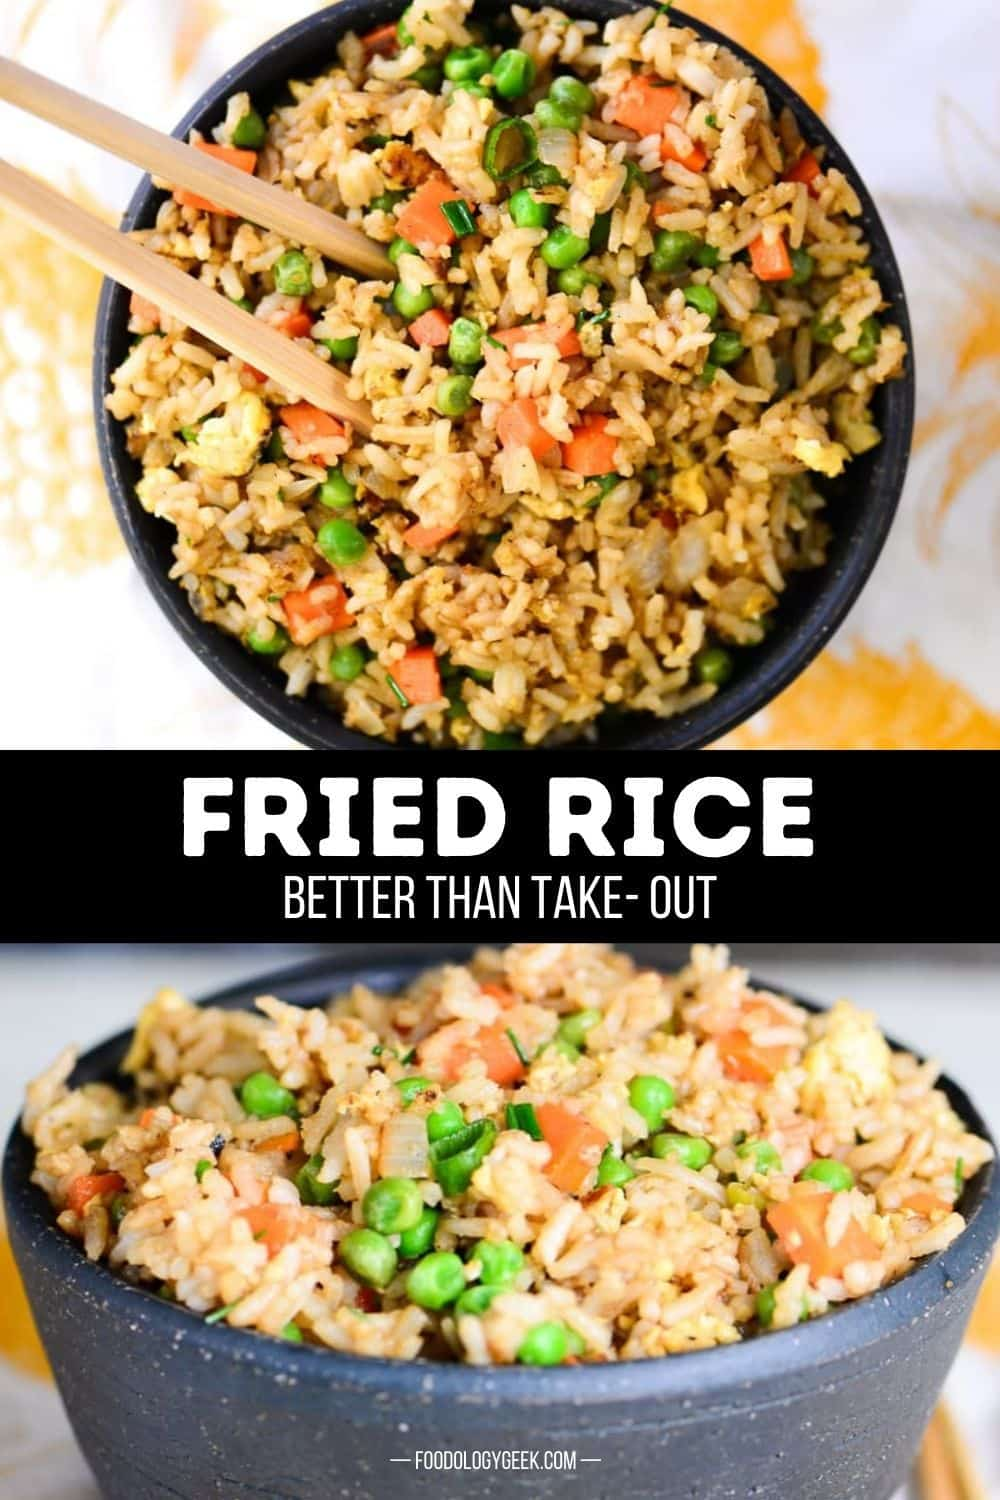 Chinese fried rice is one of the best take-out leftovers! You can make this easy fried rice recipe at home in less than 20 minutes. It's the perfect way to use up leftover rice and veggies.